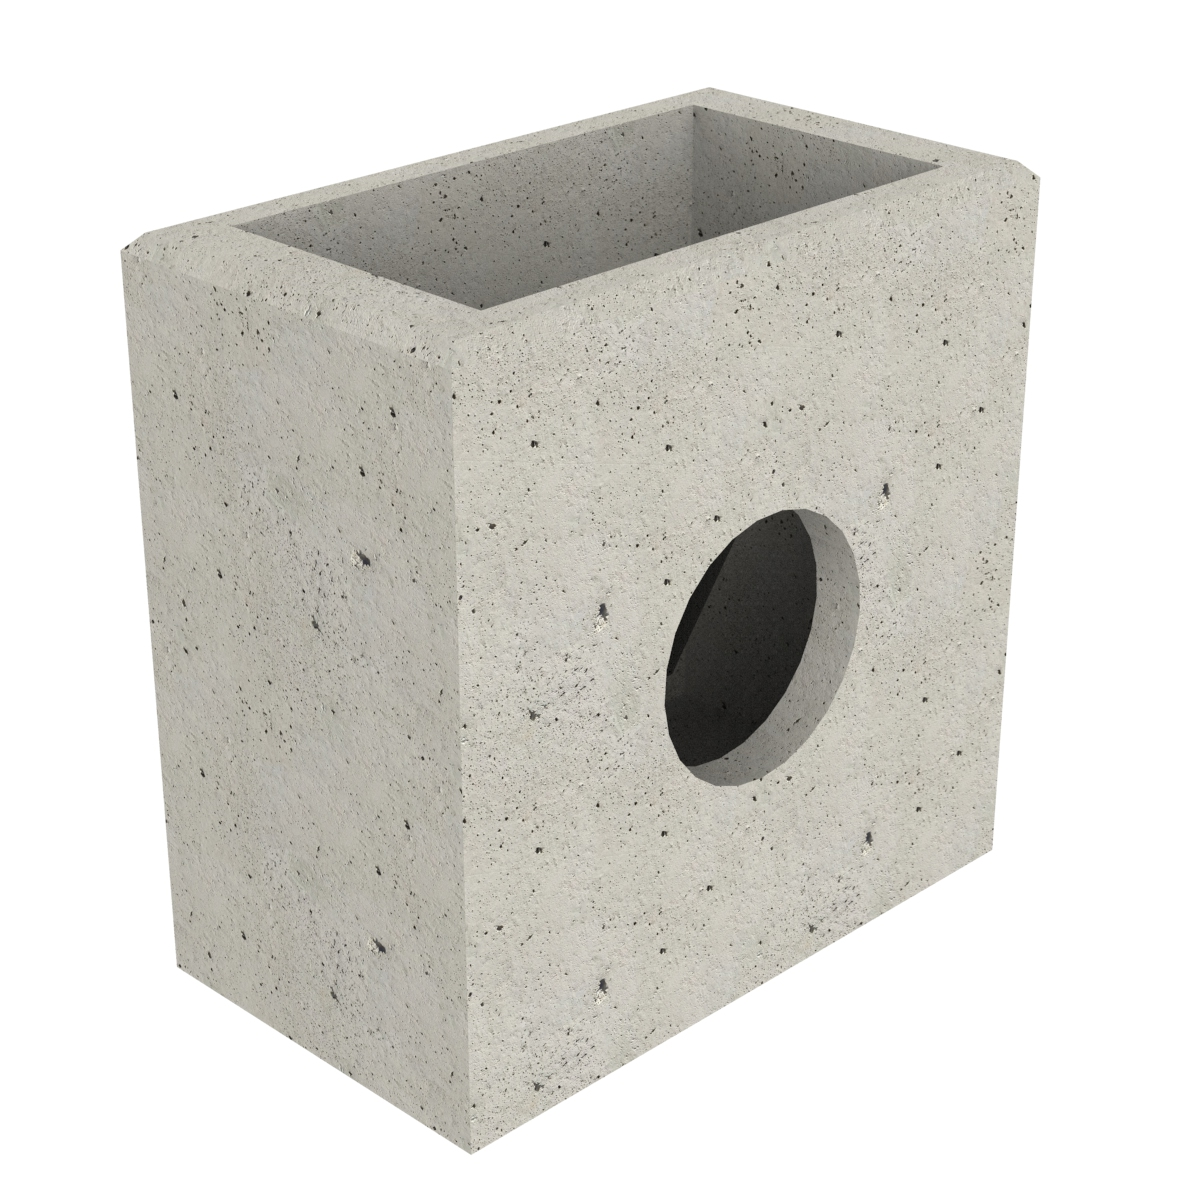 Concrete scupper with wall-plate 50x30x75